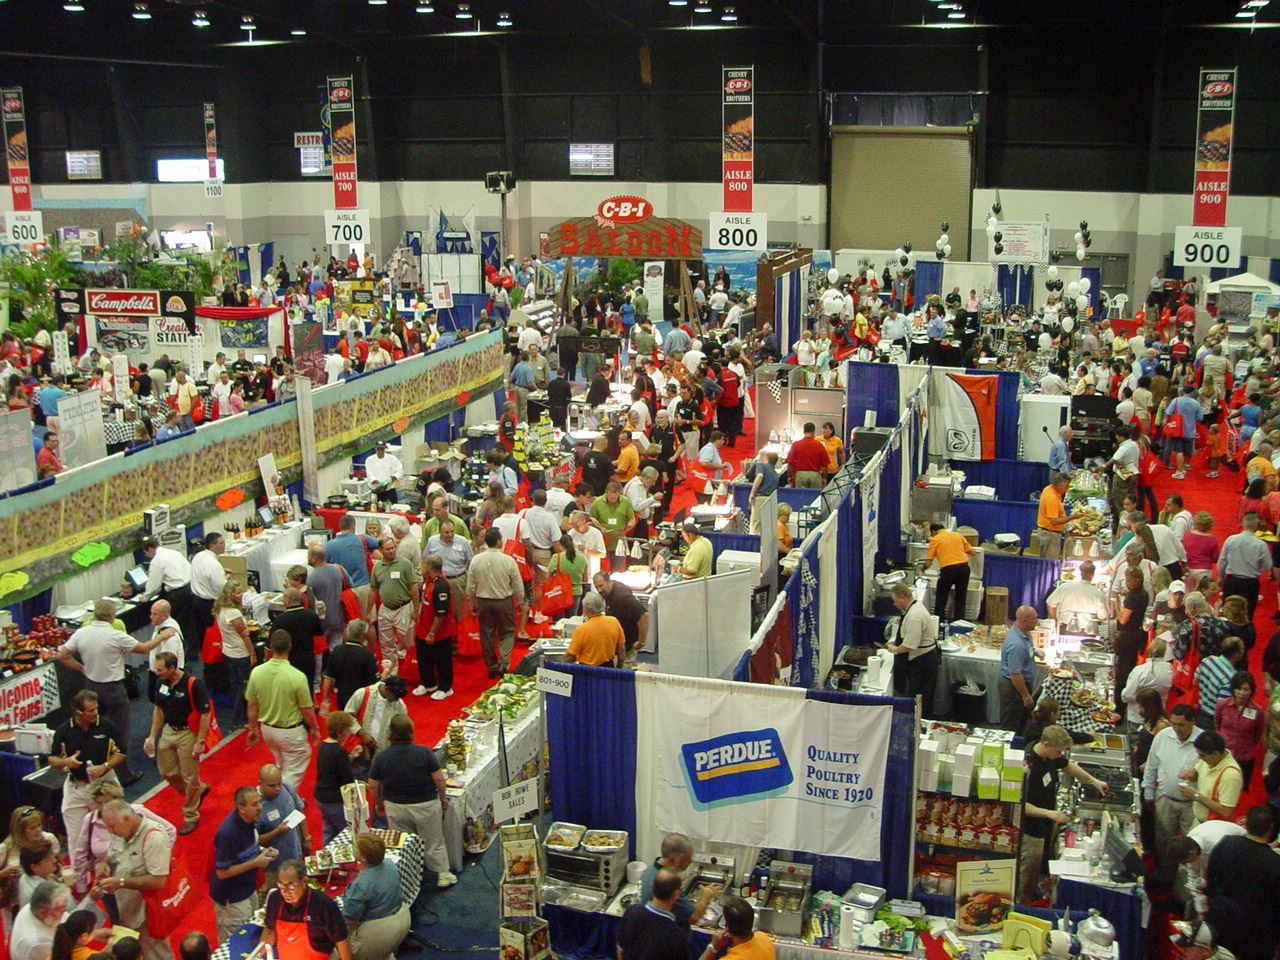 Rent The Facilities At The Expo Center At The South Florida Inside South Florida Fairgrounds Events 2021